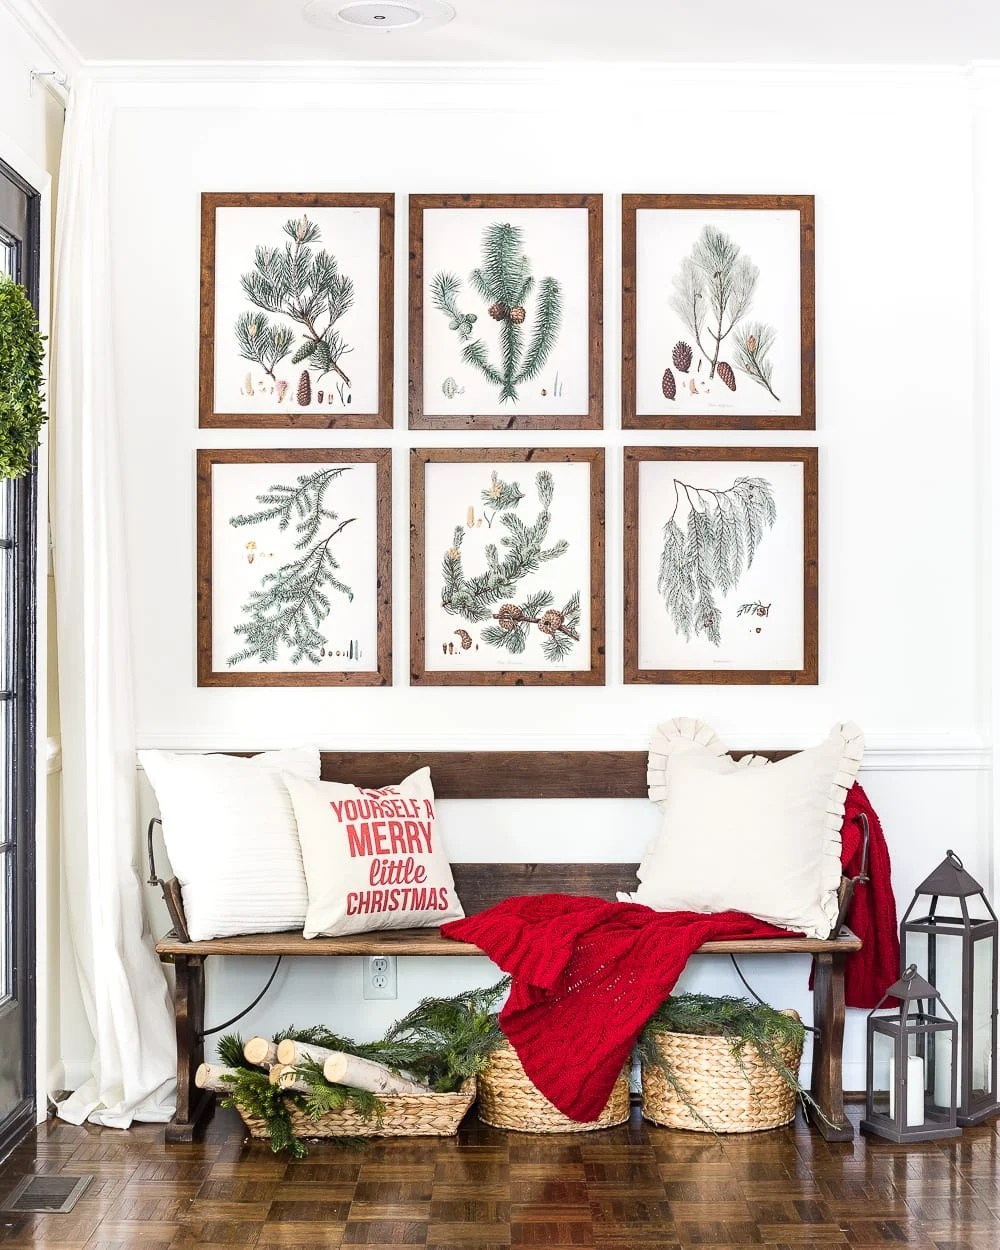 Thrifty Christmas decorating idea: Use public domain images of winter botanicals for wall art